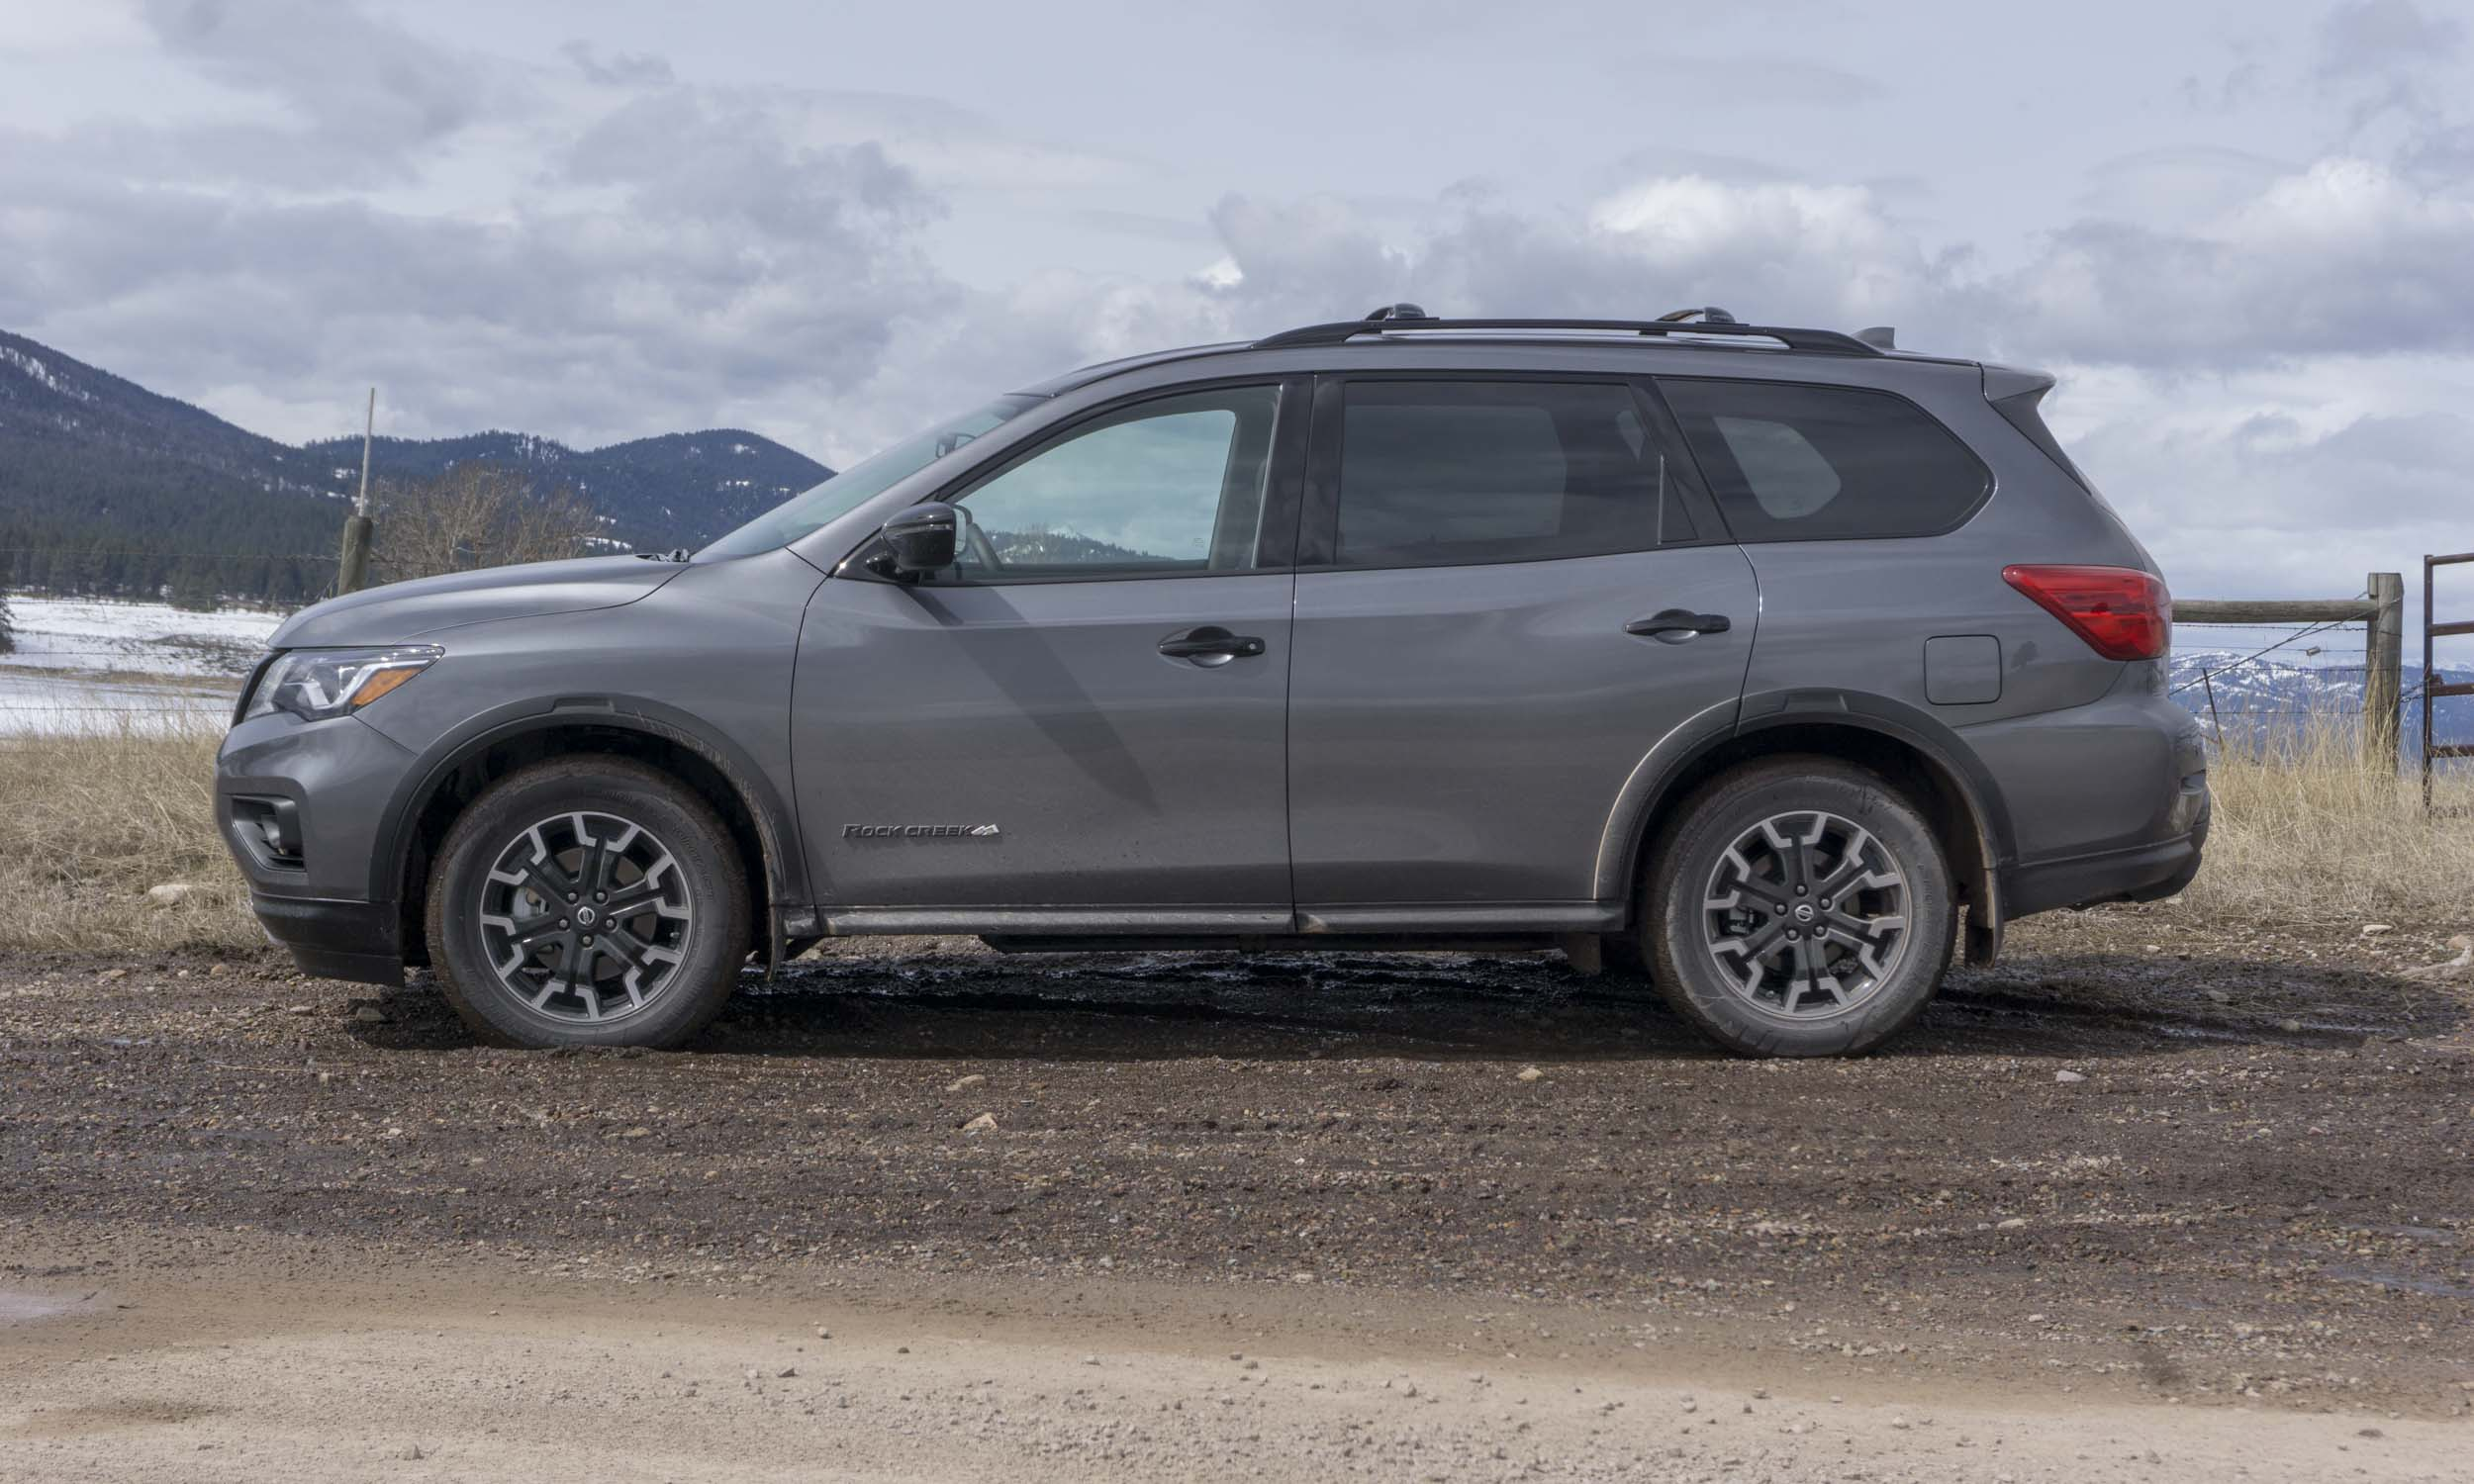 Nissan Pathfinder Rock Creek — Adventure in Montana ...